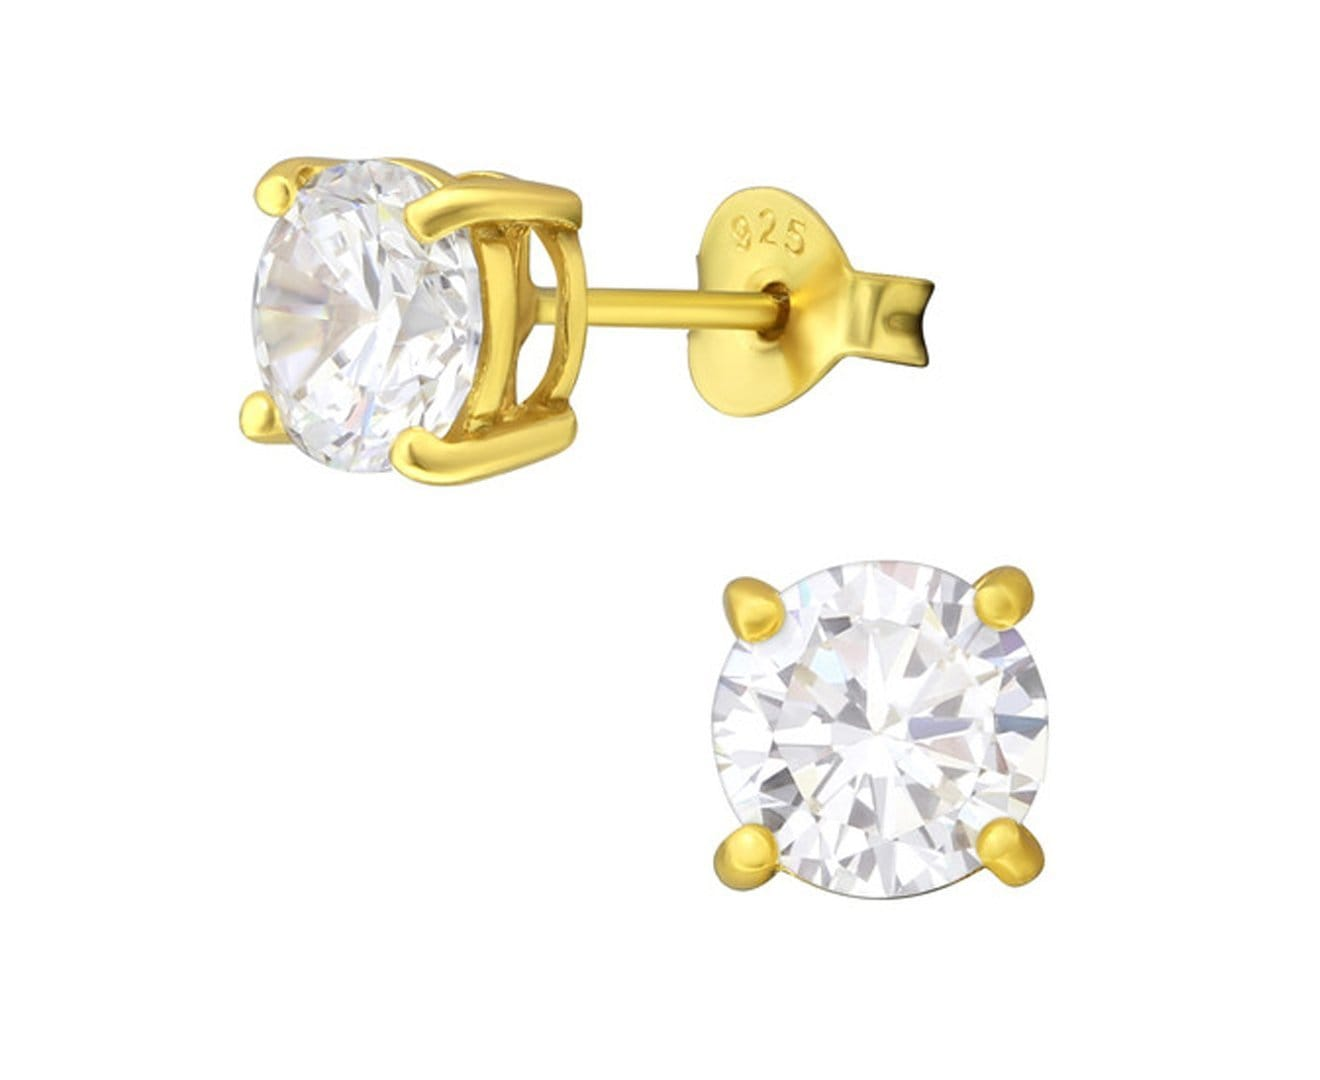 14K Gold Plated Sterling Silver CZ Crystal 6mm Silver Stud Earrings